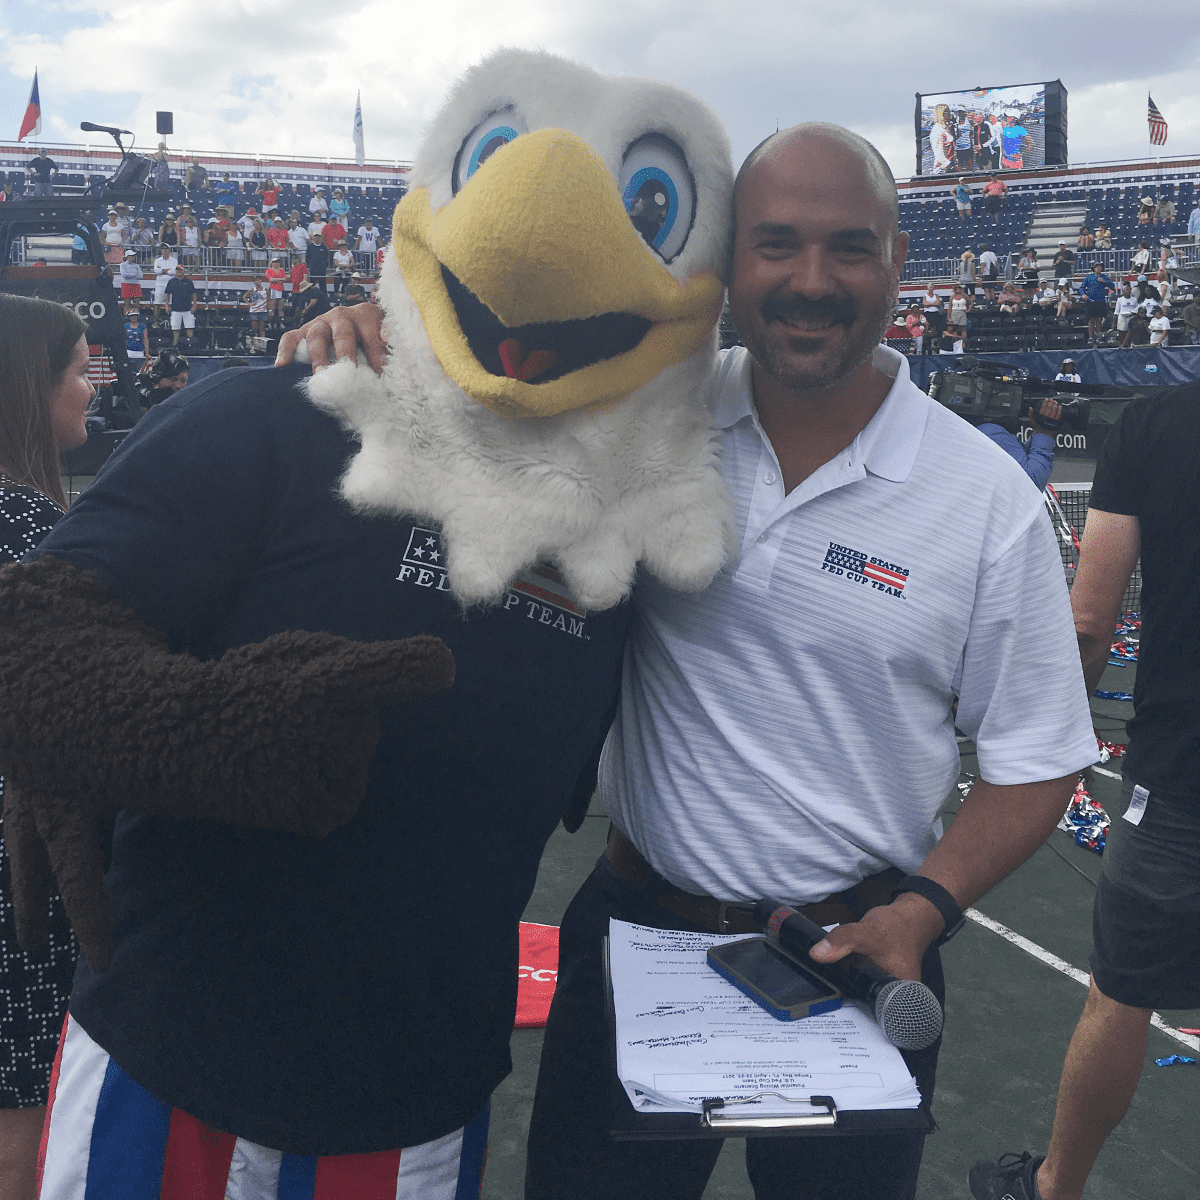 Kenny Siebold as US Fed Cup Team Mascot ACE...